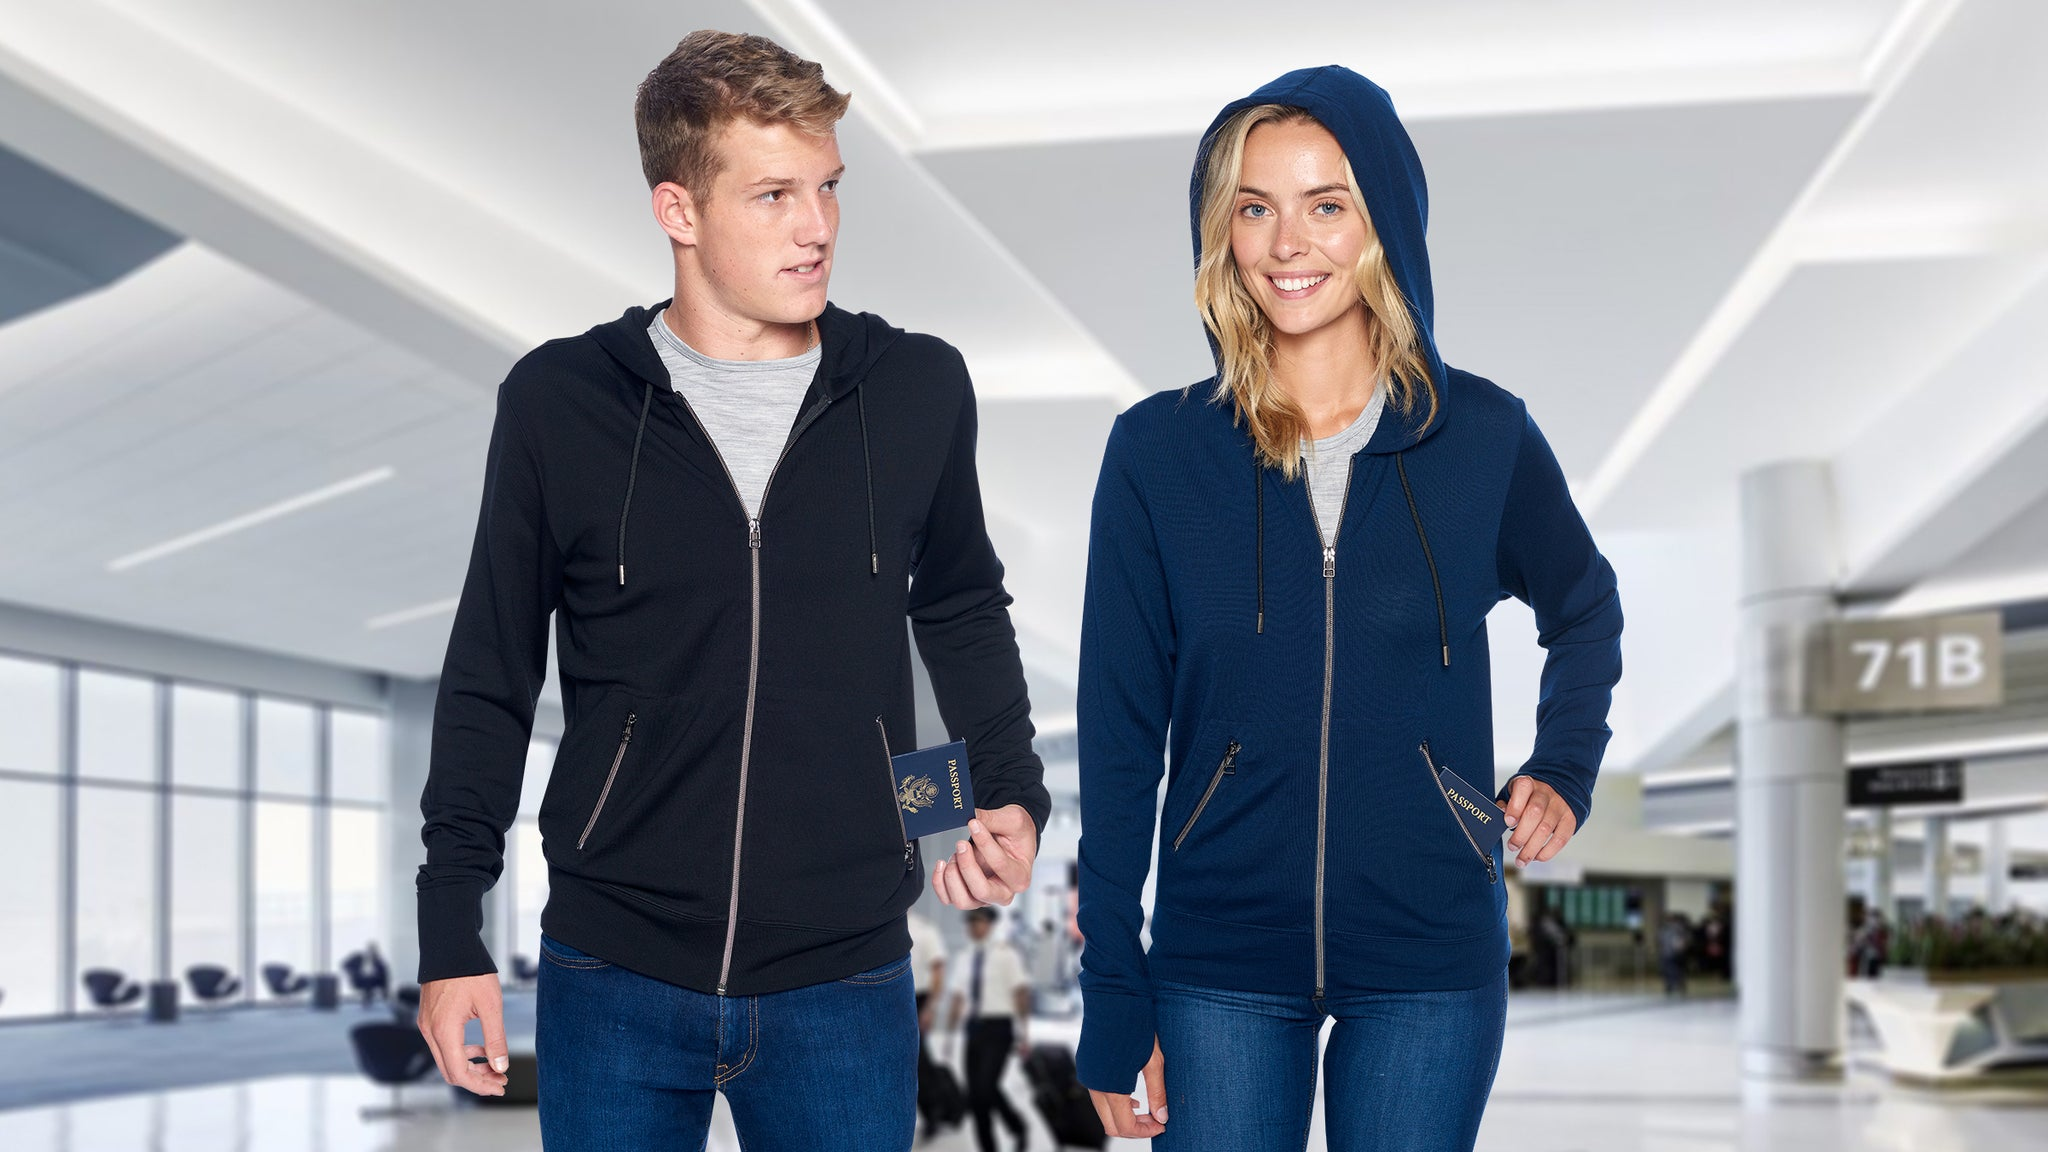 Man and women wearing merino wool hoodies inside a modern airport. He is wearing the Air Dry Merino Wool Hoodie in Black and she is wearing the Air Dry Merino Wool Hoodie in Navy Blue.